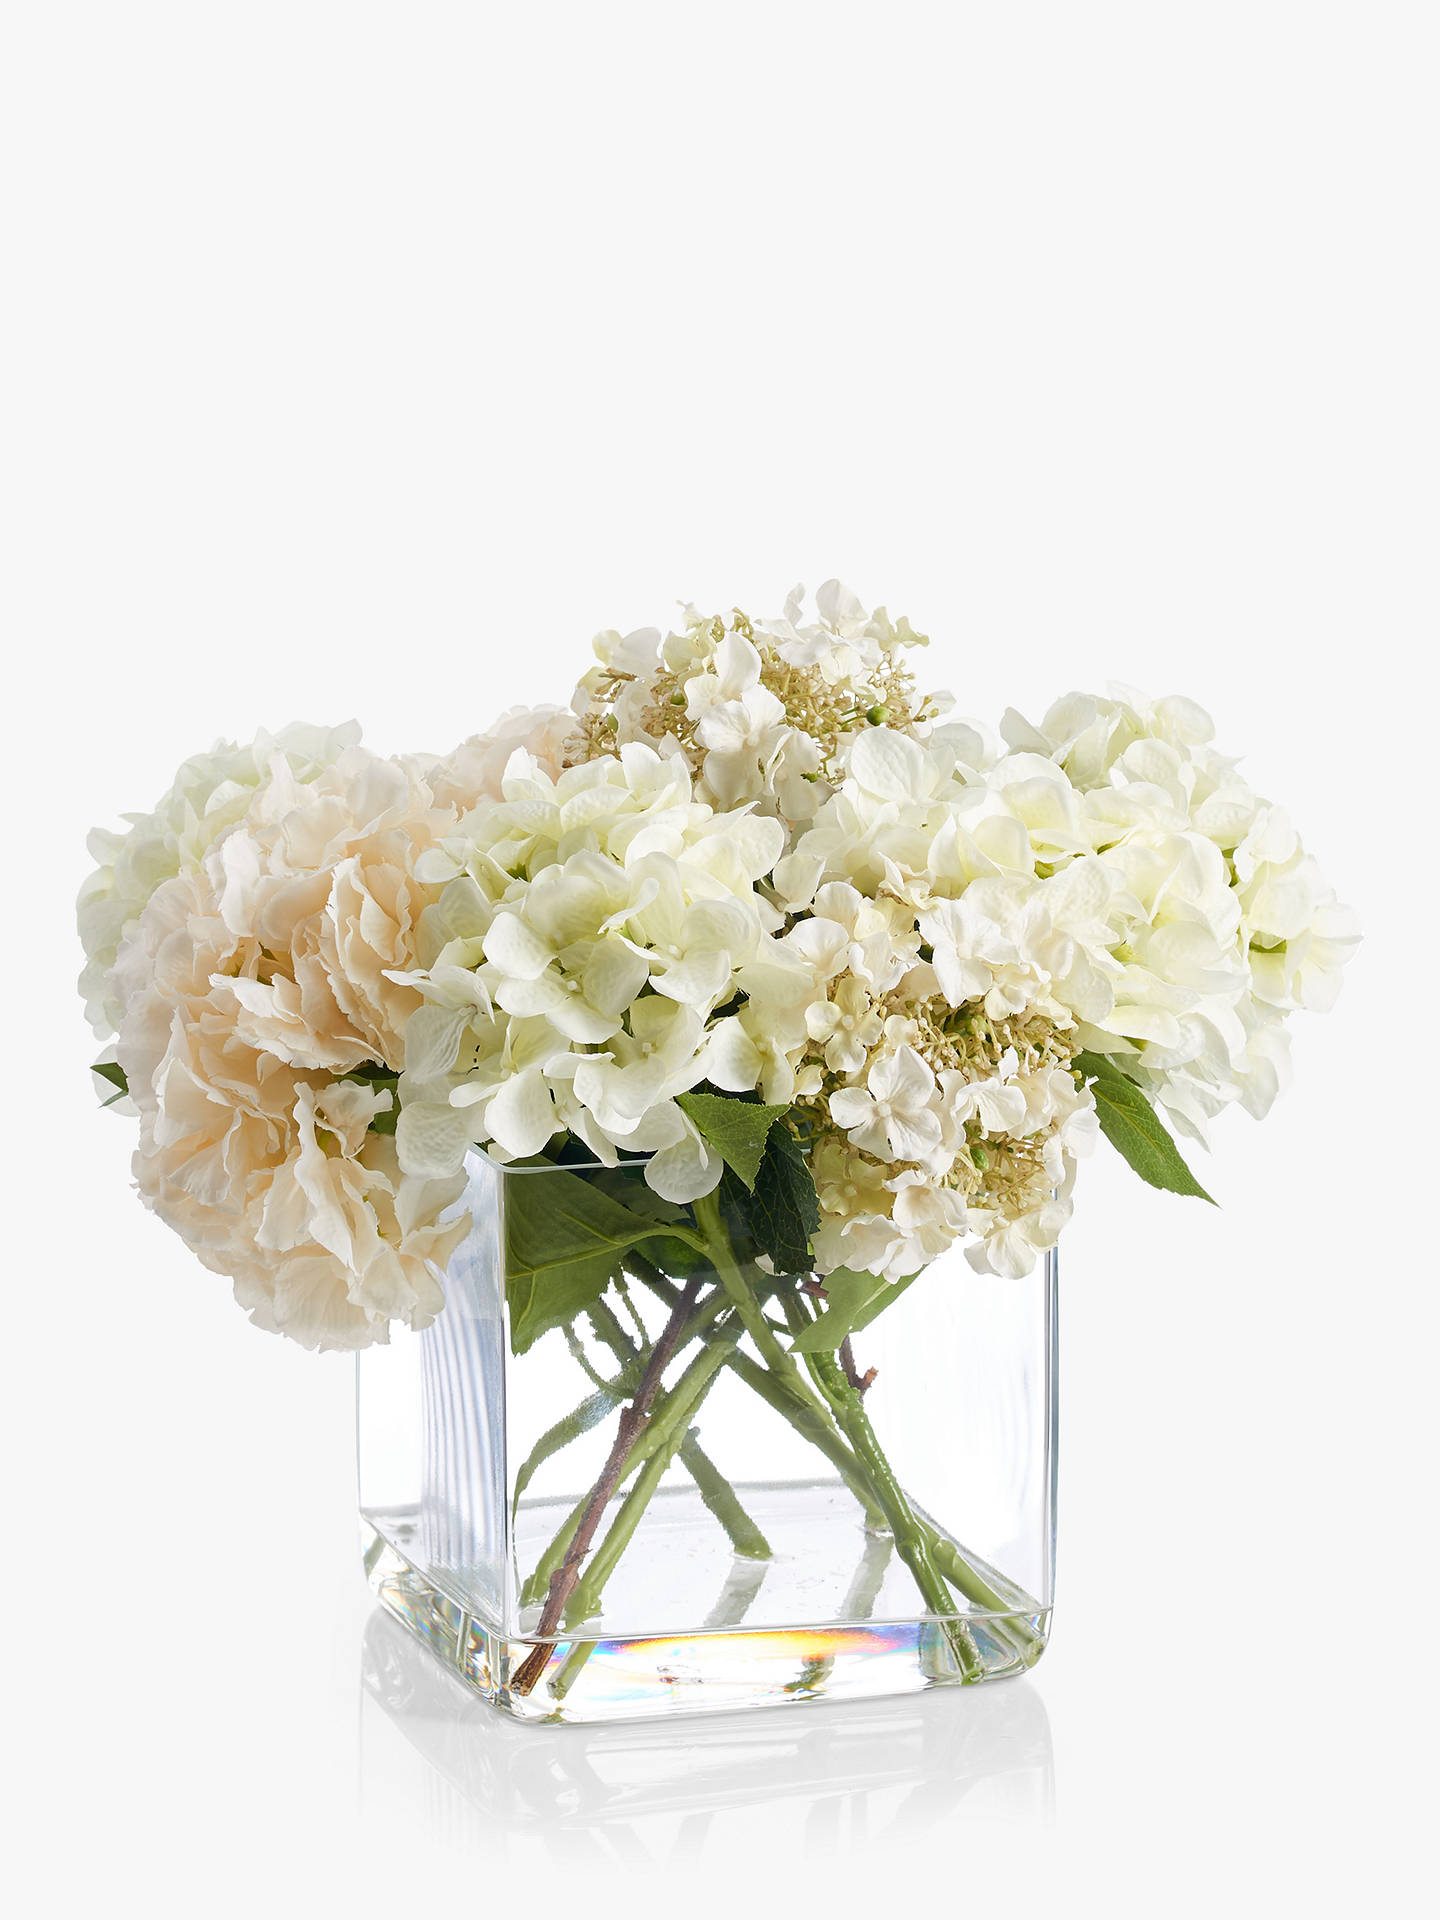 Buy Peony Artificial Hydrangea In Glass Cube, Large, White Online at johnlewis.com